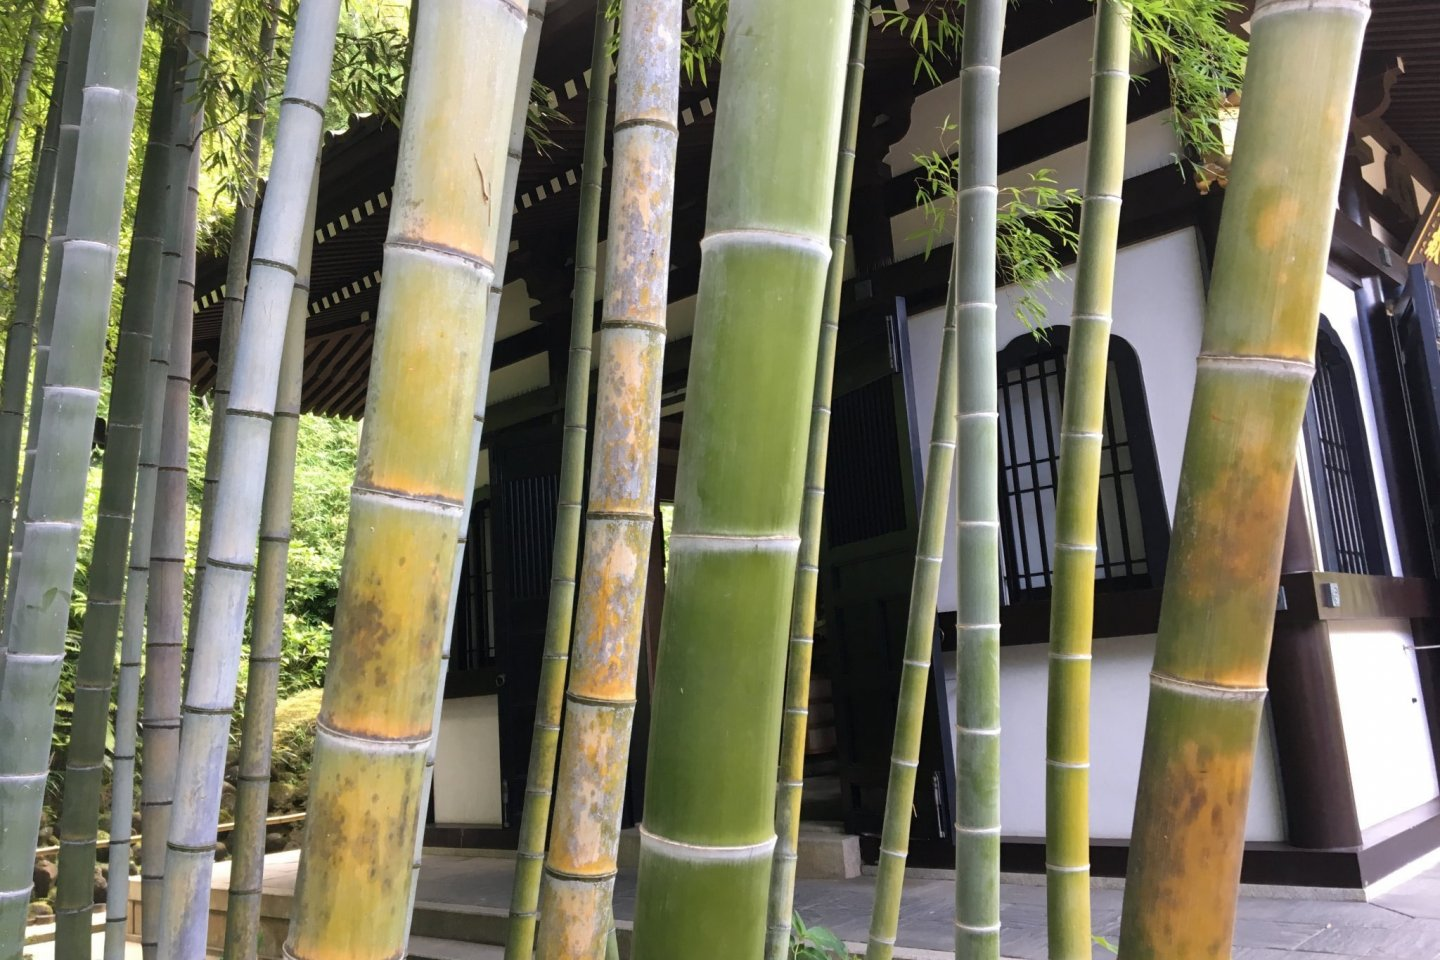 What difference does a bamboo grove make? A temple without bamboos seemed unimaginable